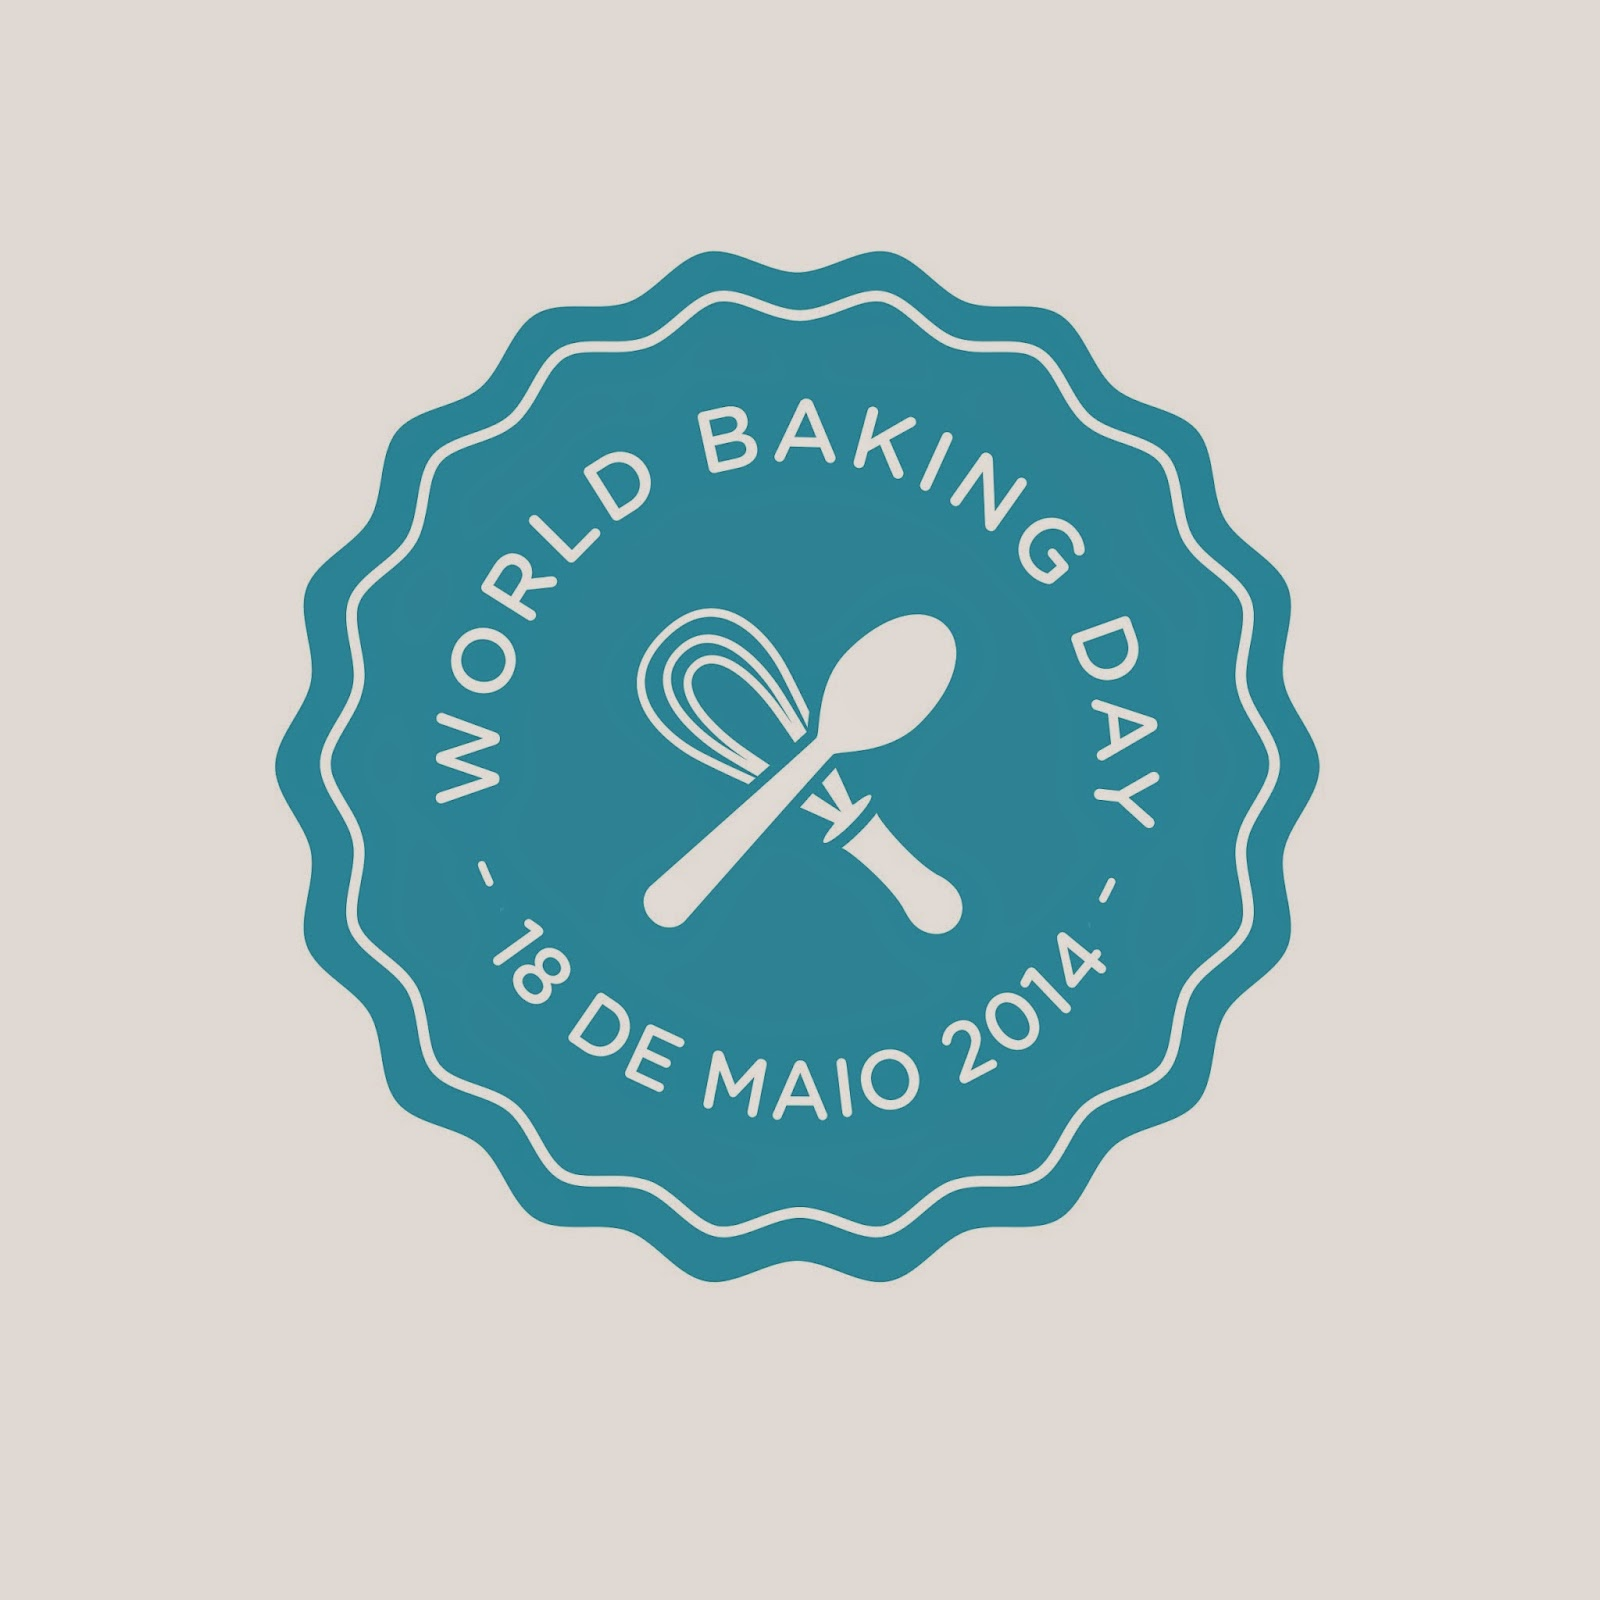 World Baking Day ::: 18 de Maio 2014